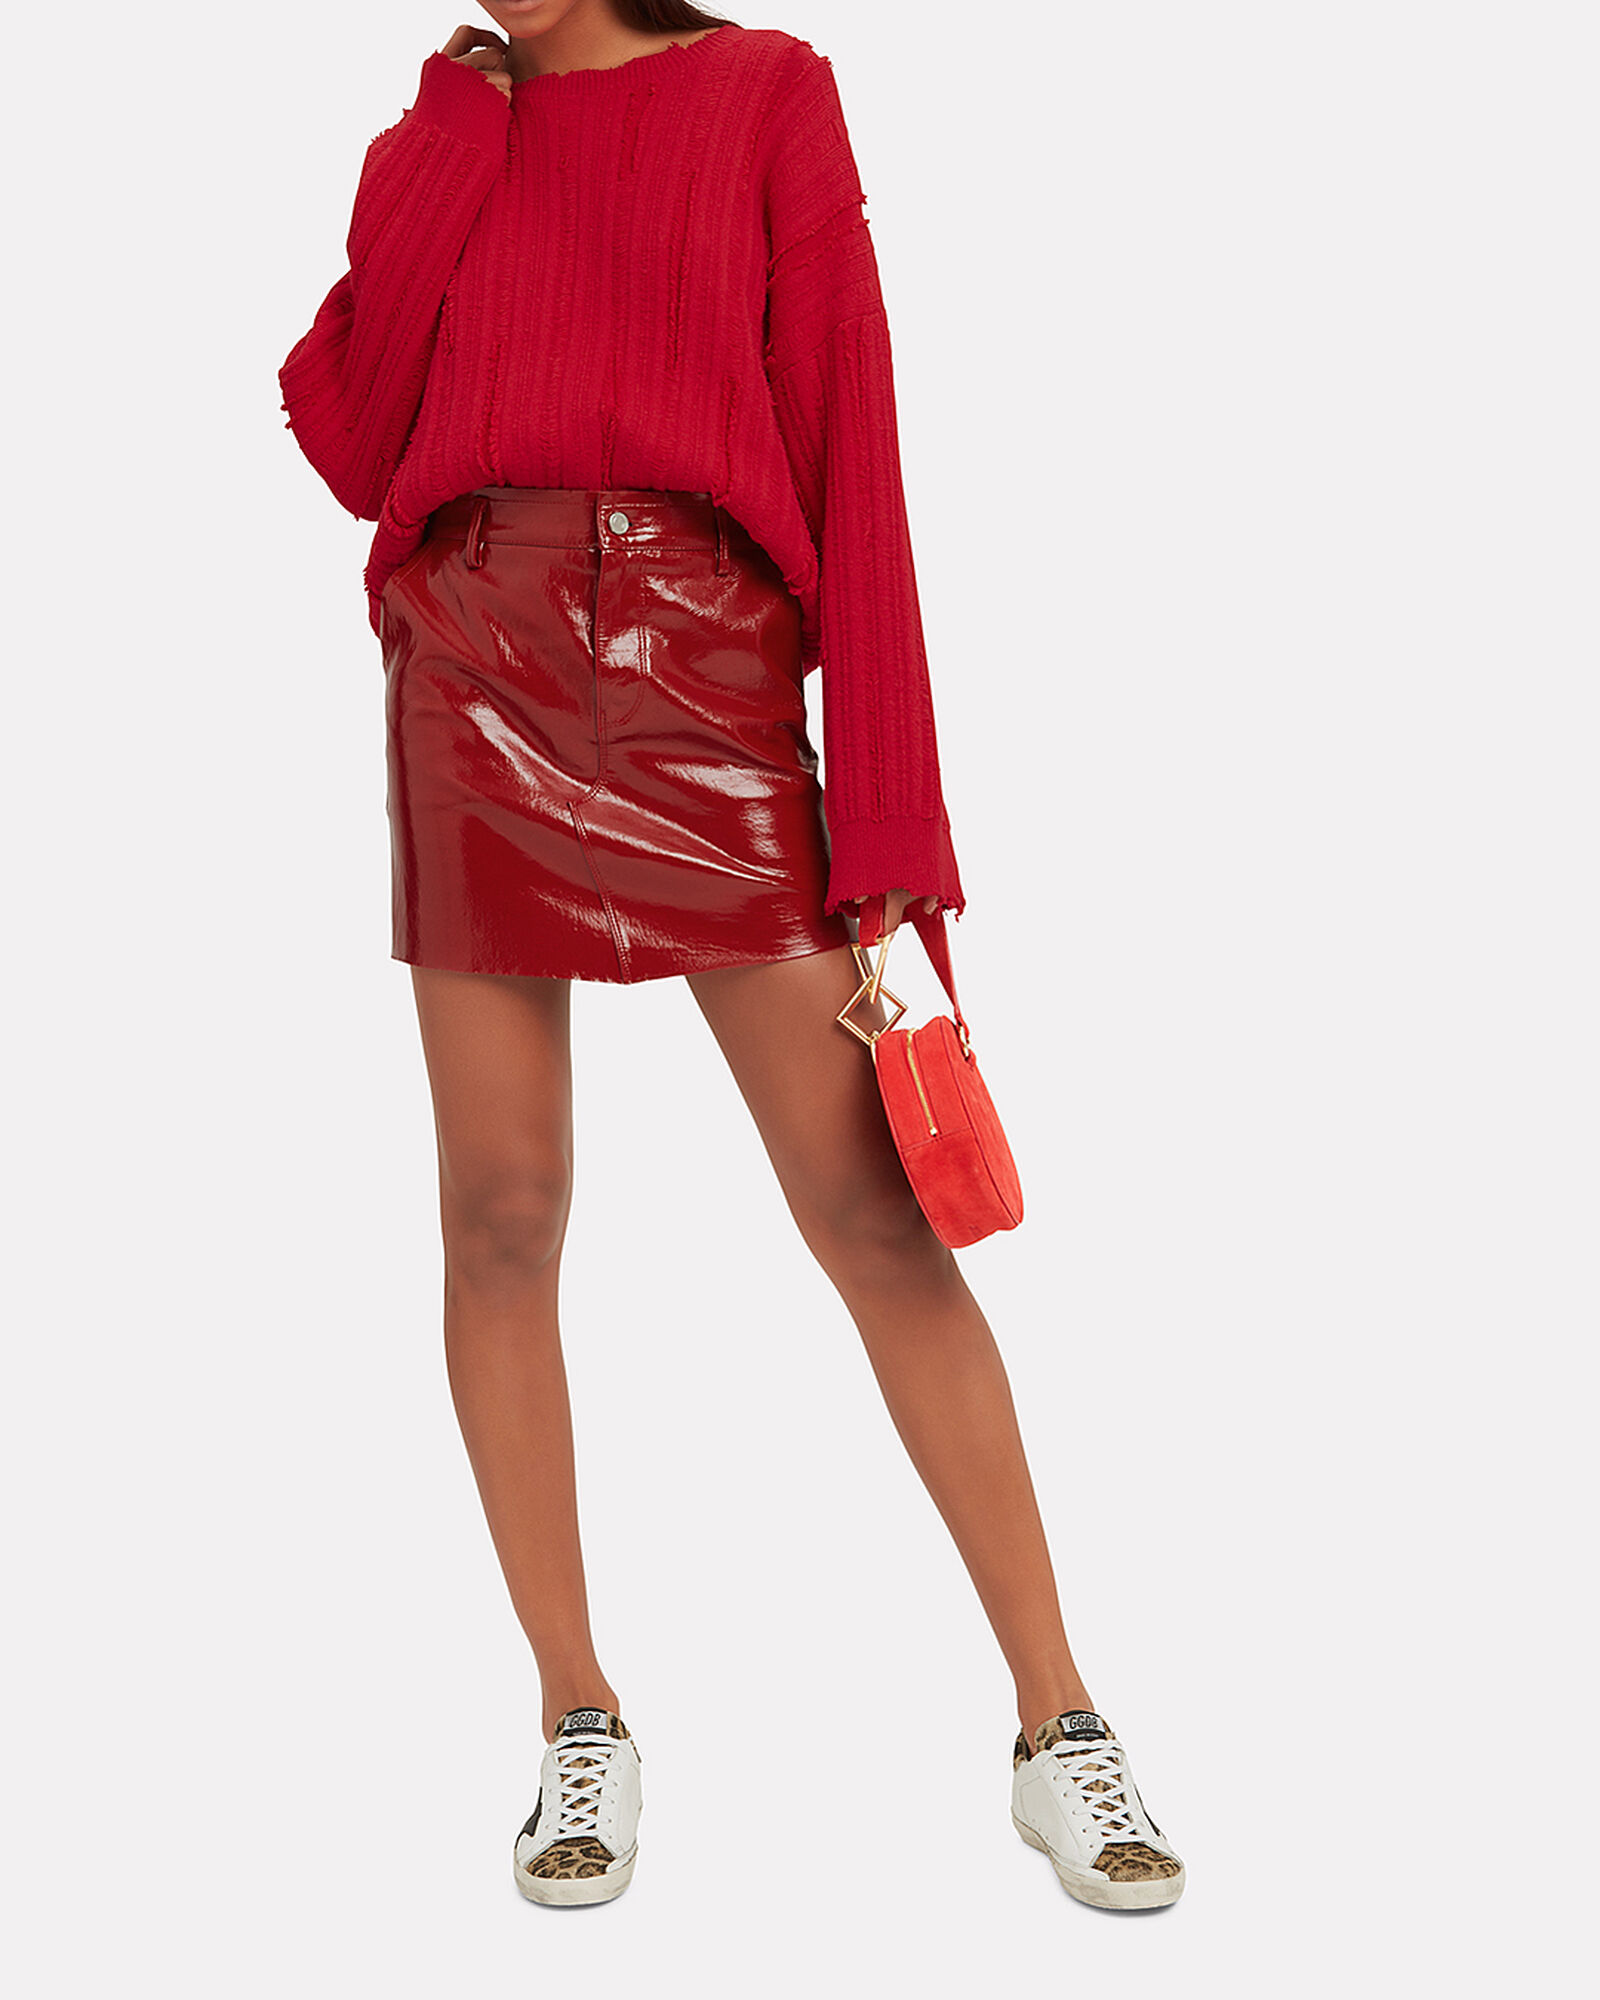 Red Patent Leather Mini Skirt, RED, hi-res